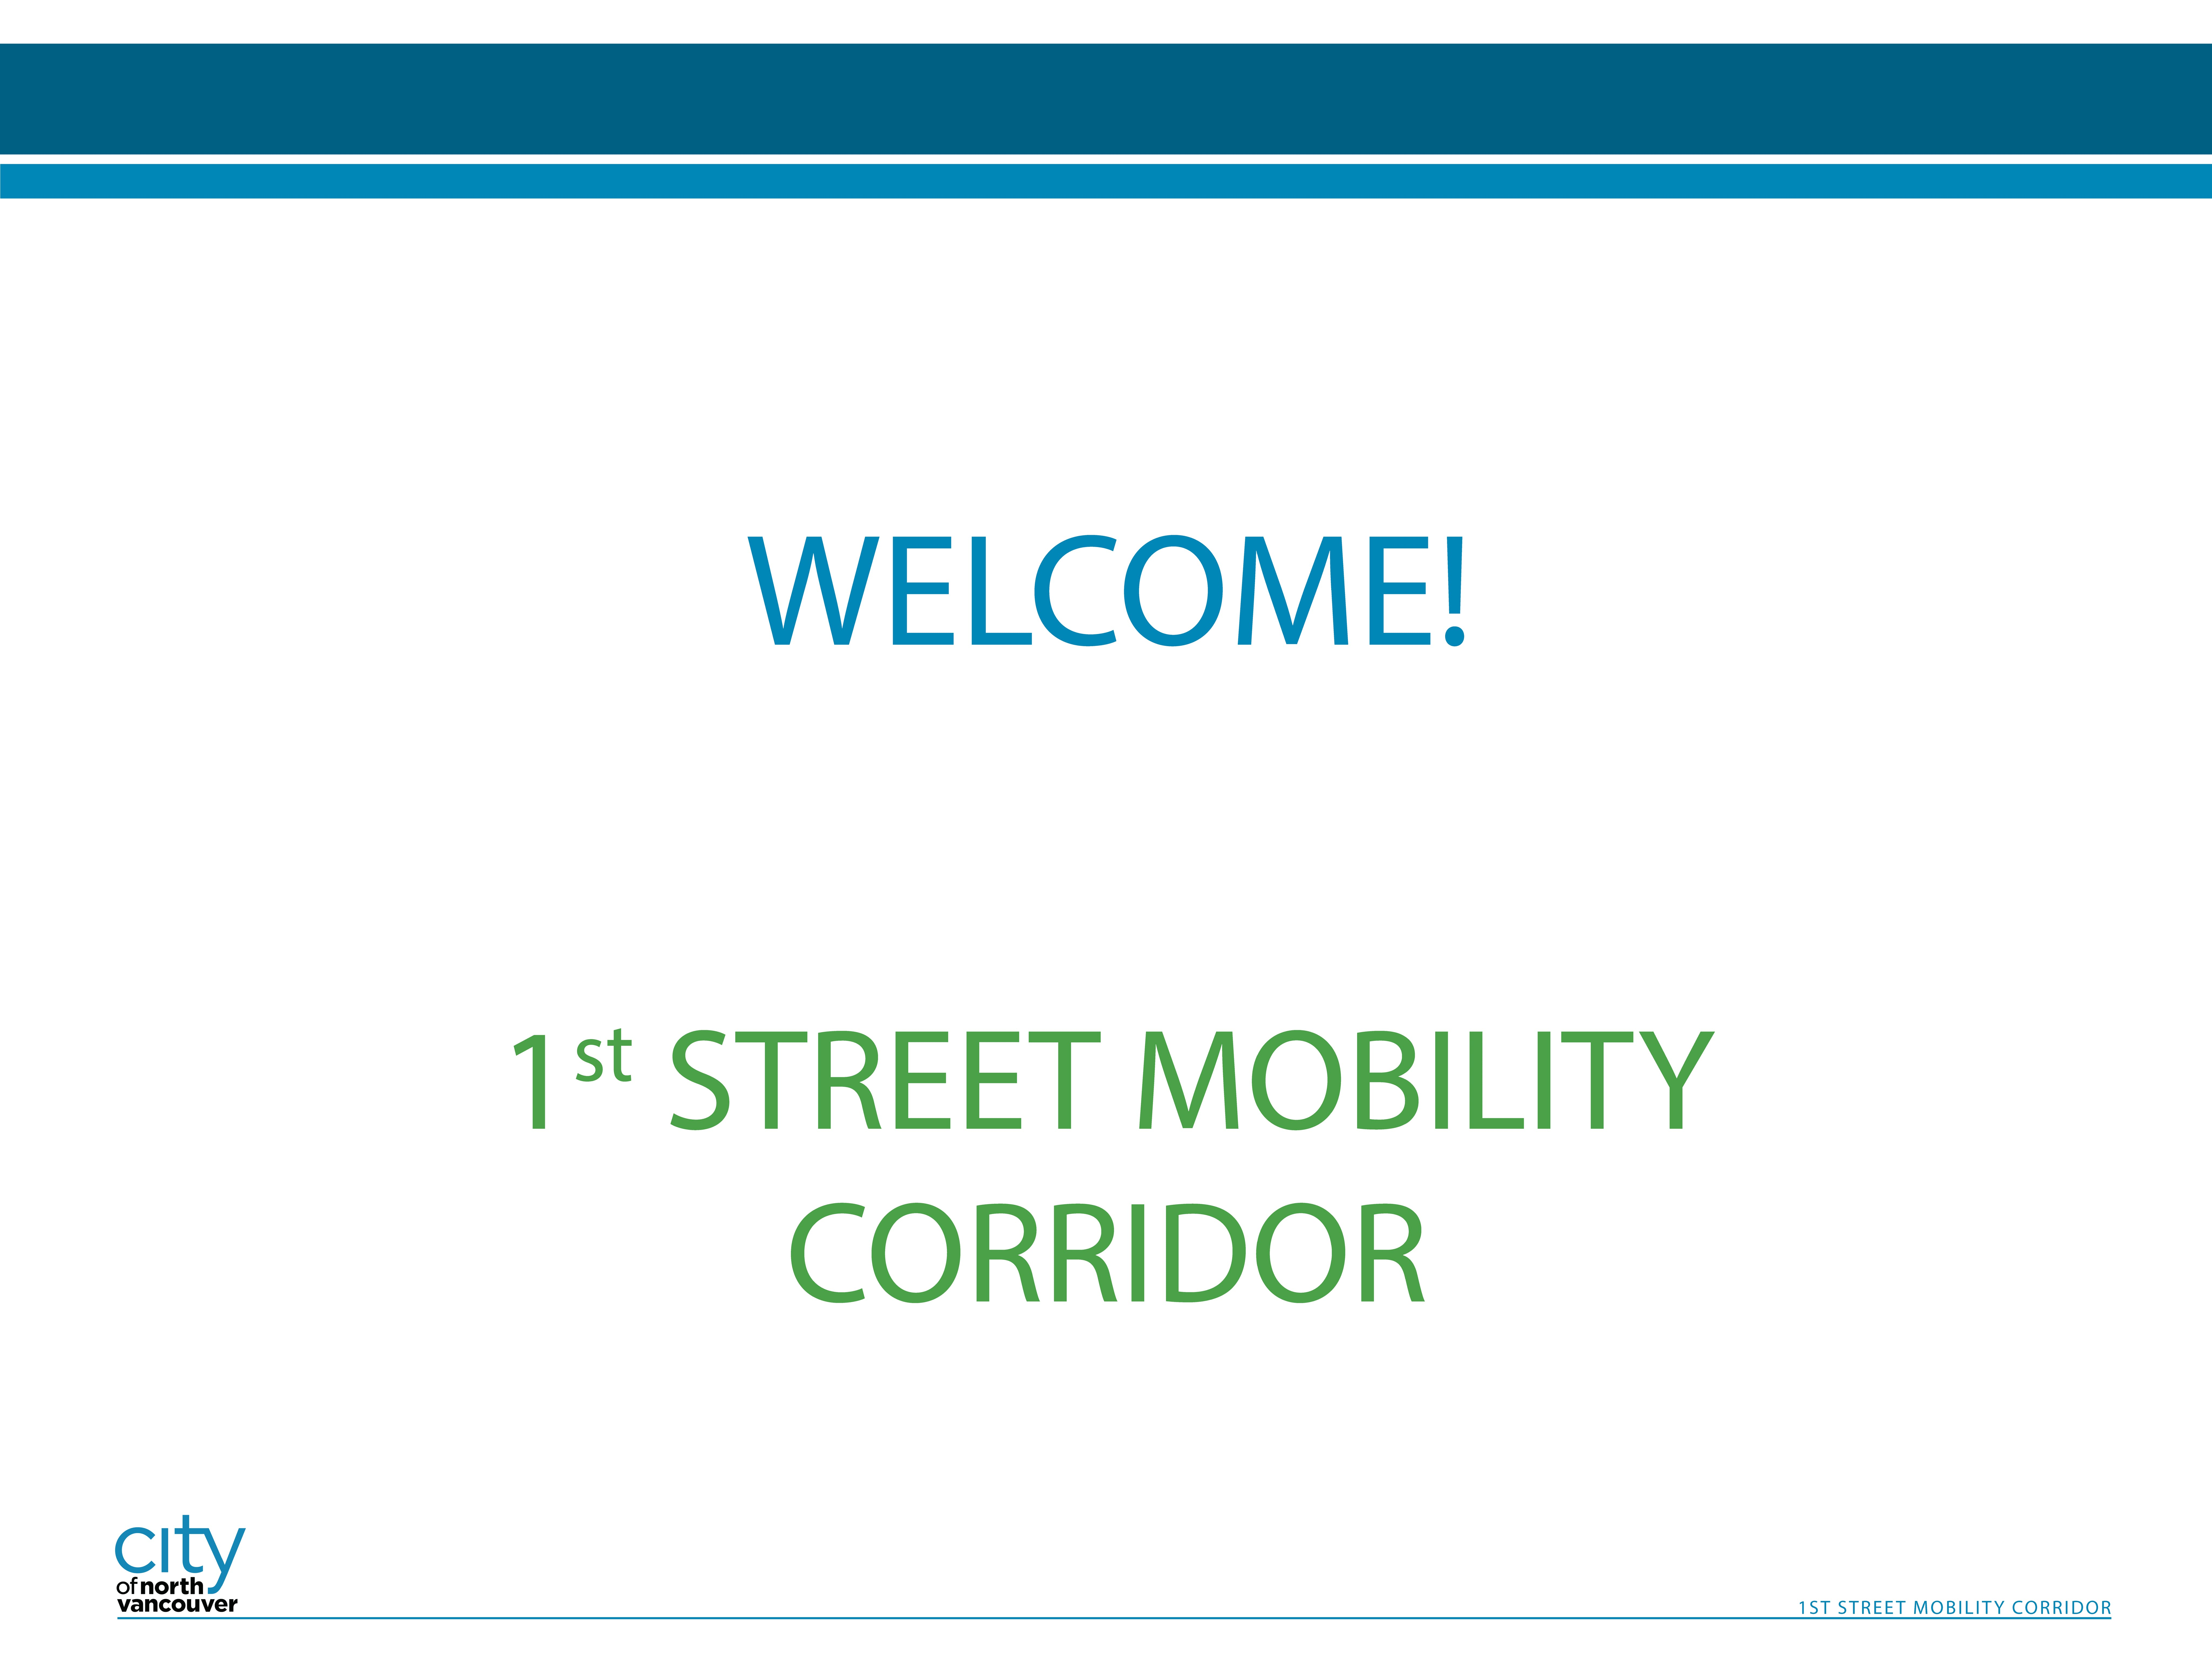 1st Street Mobility Corridor - Page 1